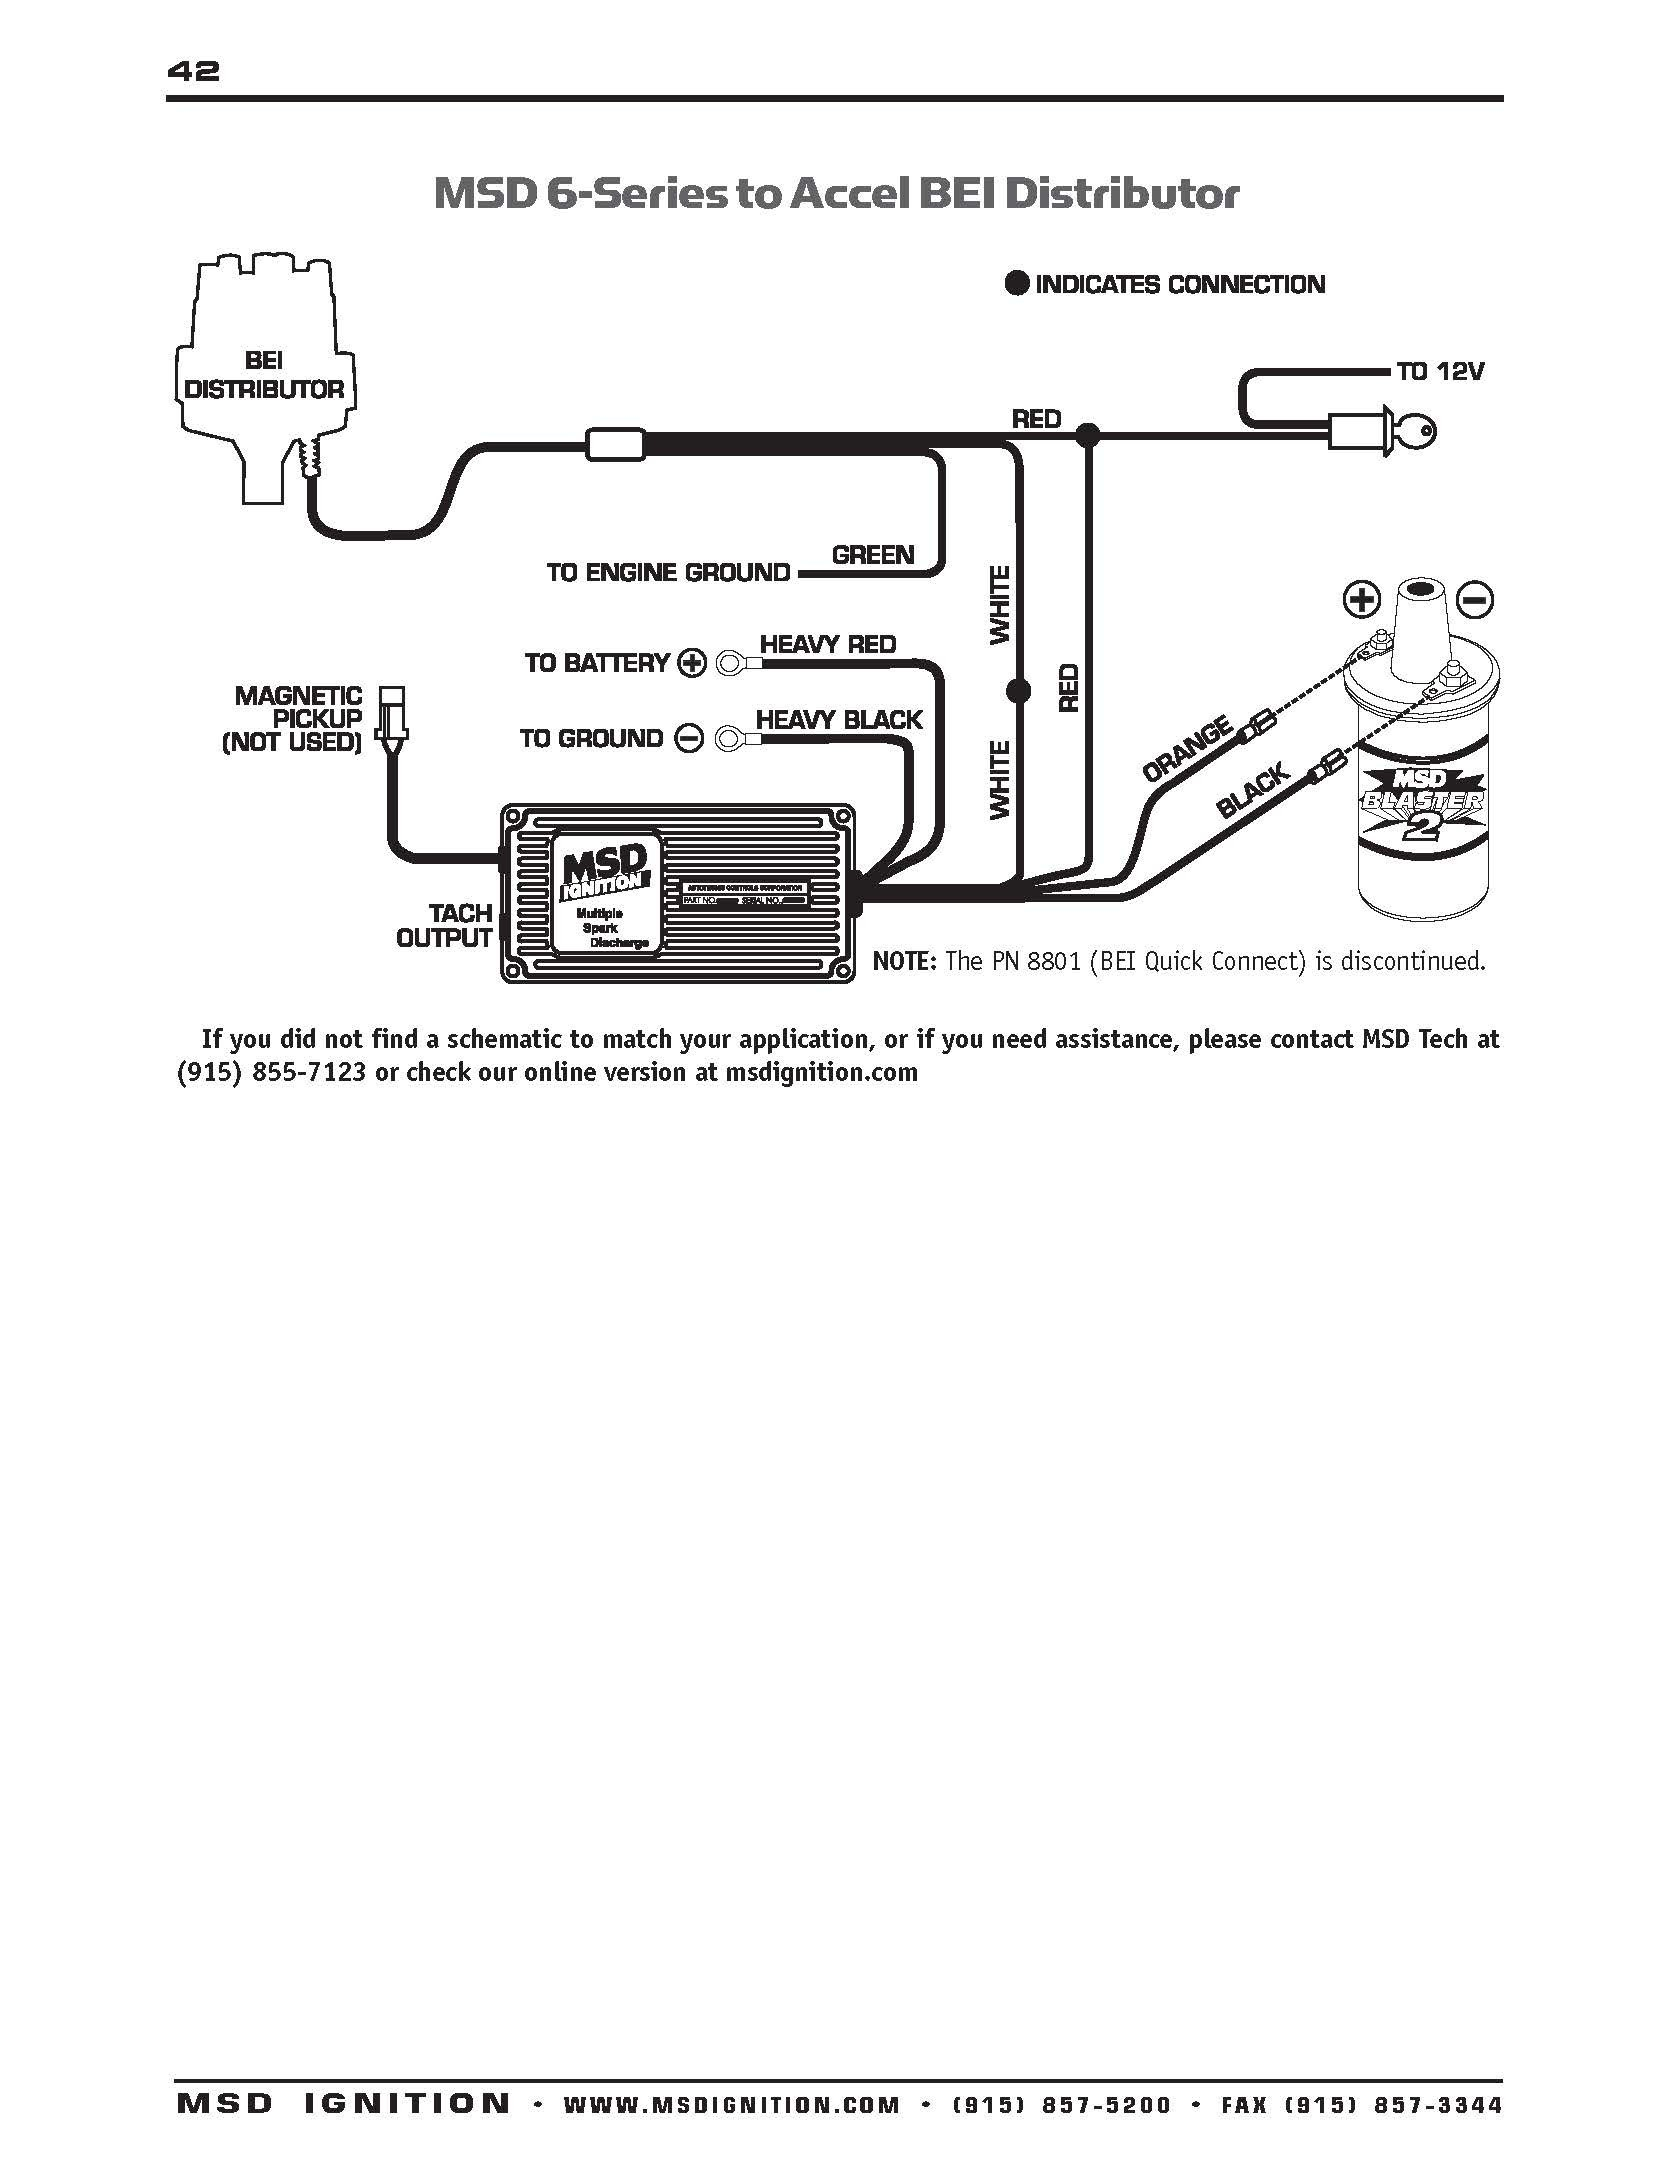 Chevy hei distributor wiring diagram chevy hei coil wiring diagram chevy hei distributor wiring diagram electronic ignition distributor wiring diagram of chevy hei distributor wiring diagram publicscrutiny Images